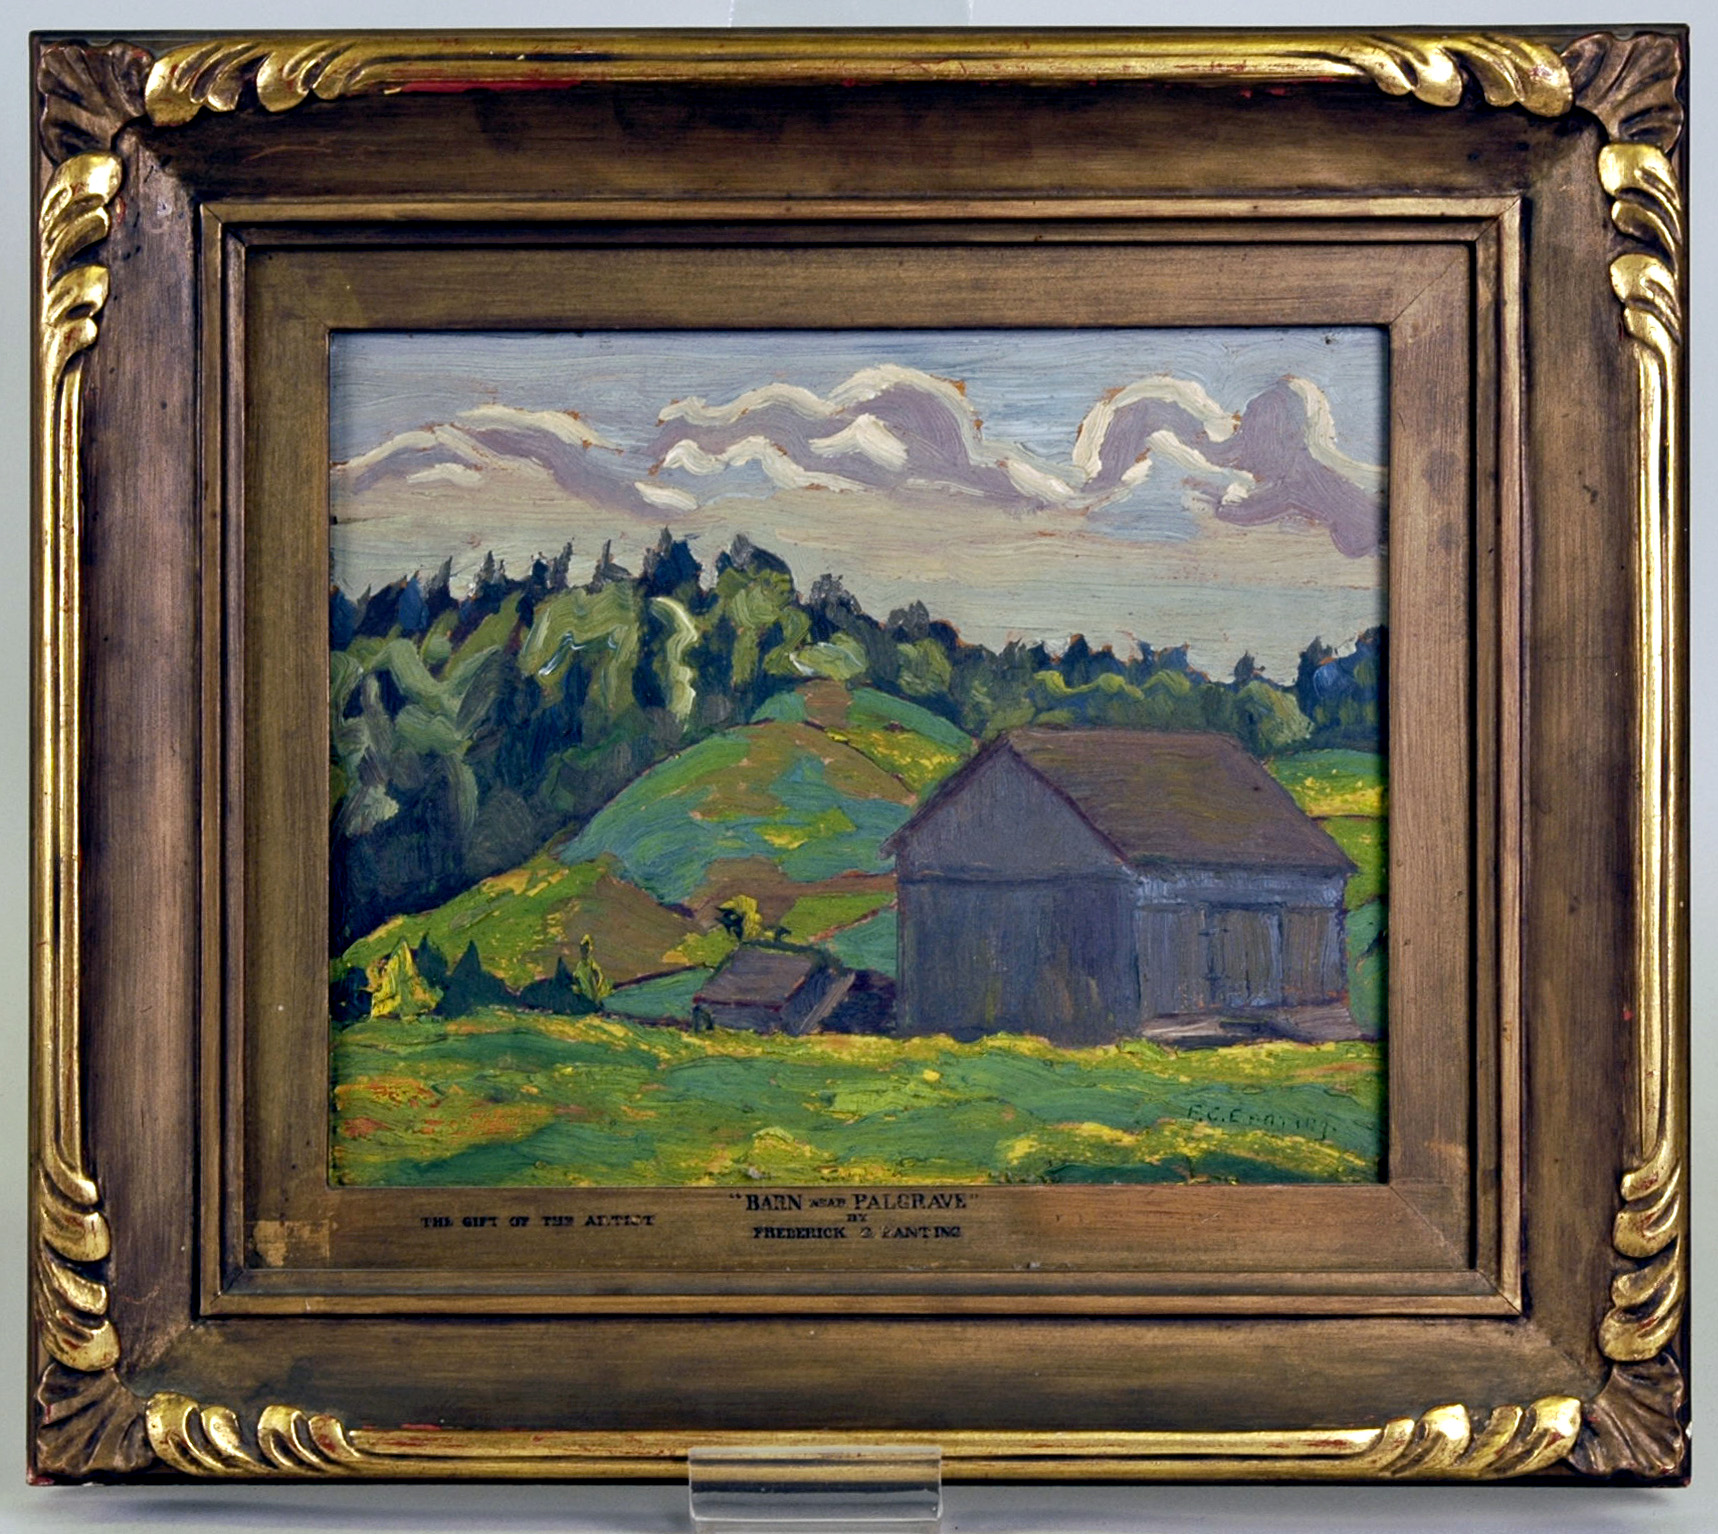 PAMA Museum - Barn Near Palgrave by Frederick G. Banting - co-creator of Insulin and artist